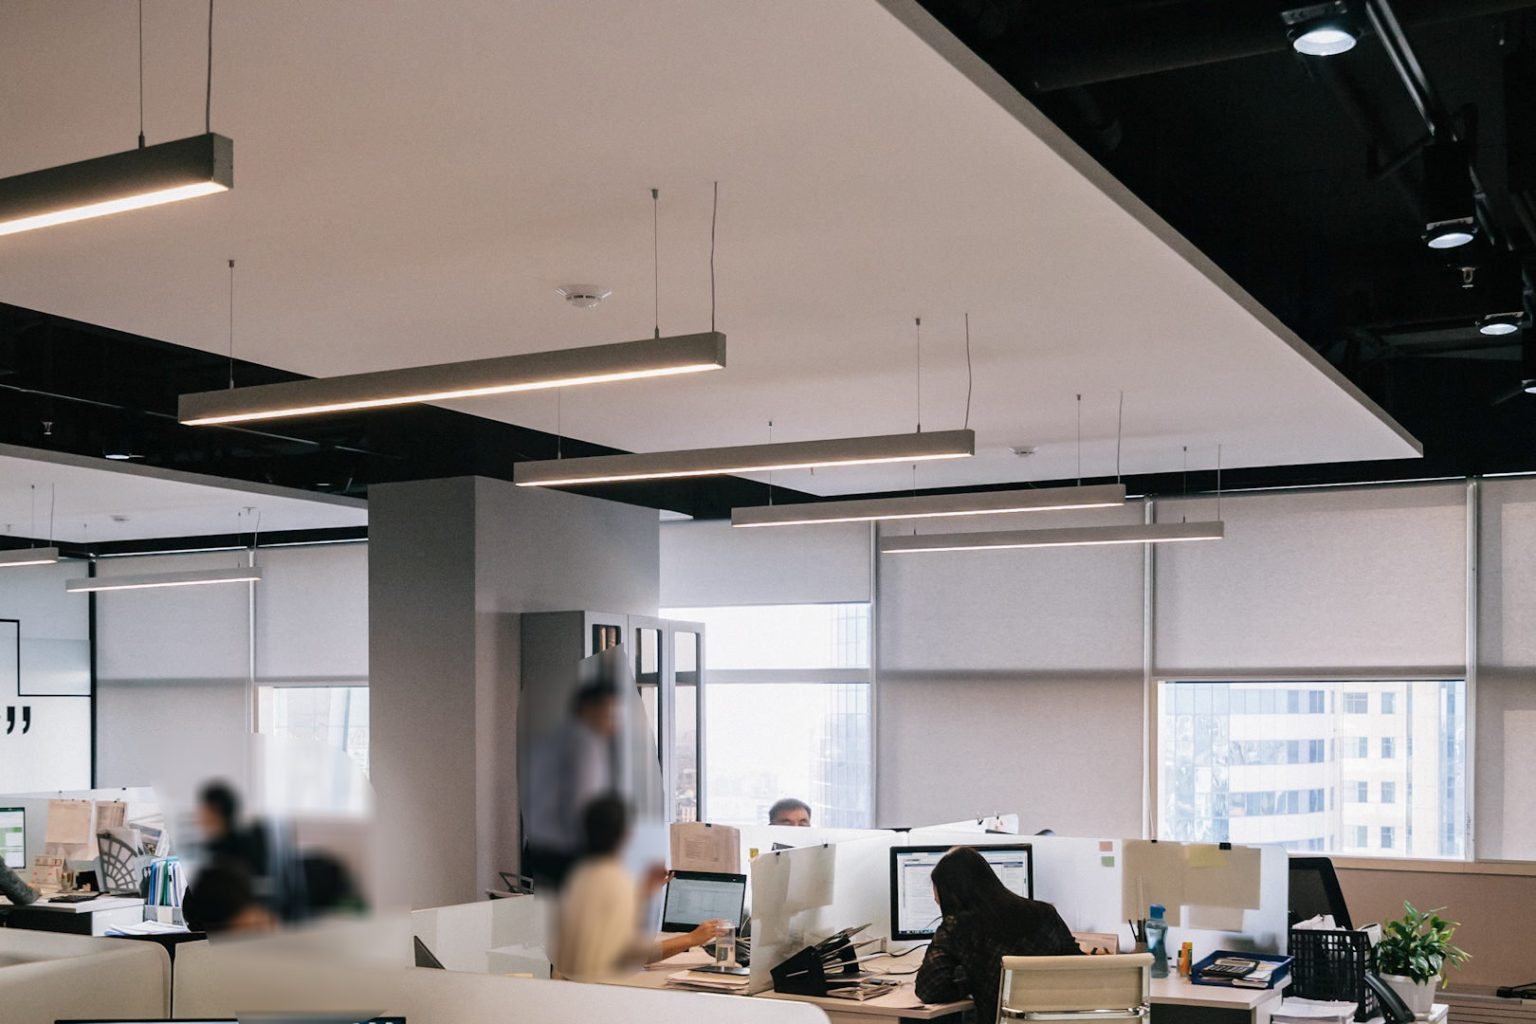 office lighting installation repair and replacement